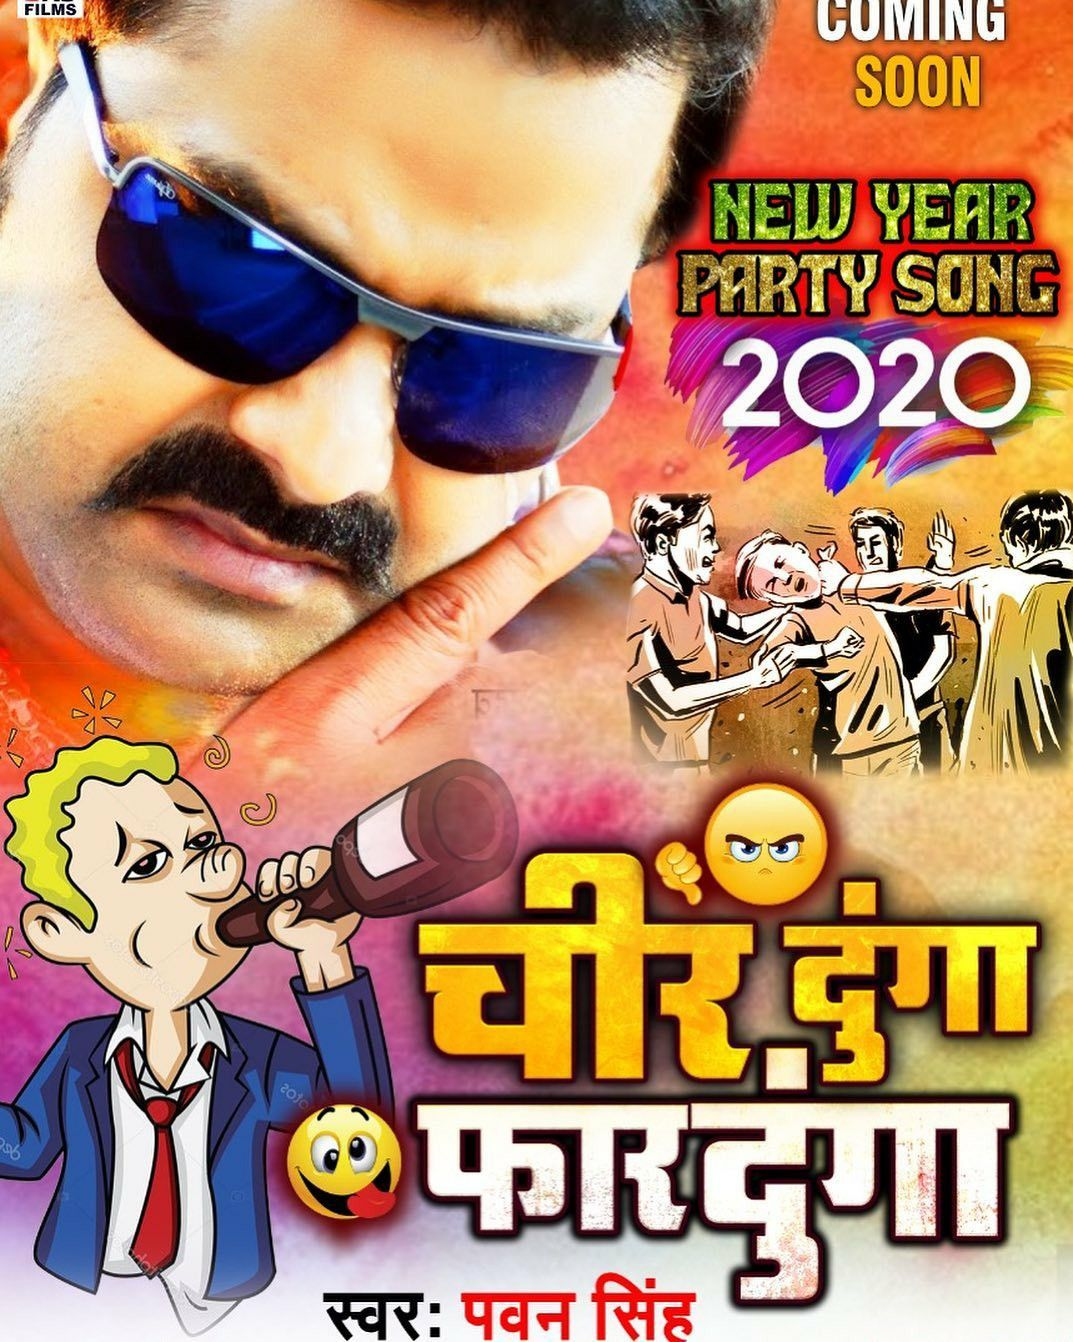 Cheer Dunga Far Dunga Pawan Singh Happy New Year 2020 Song Download With Images New Year Party Songs Happy New Year Song